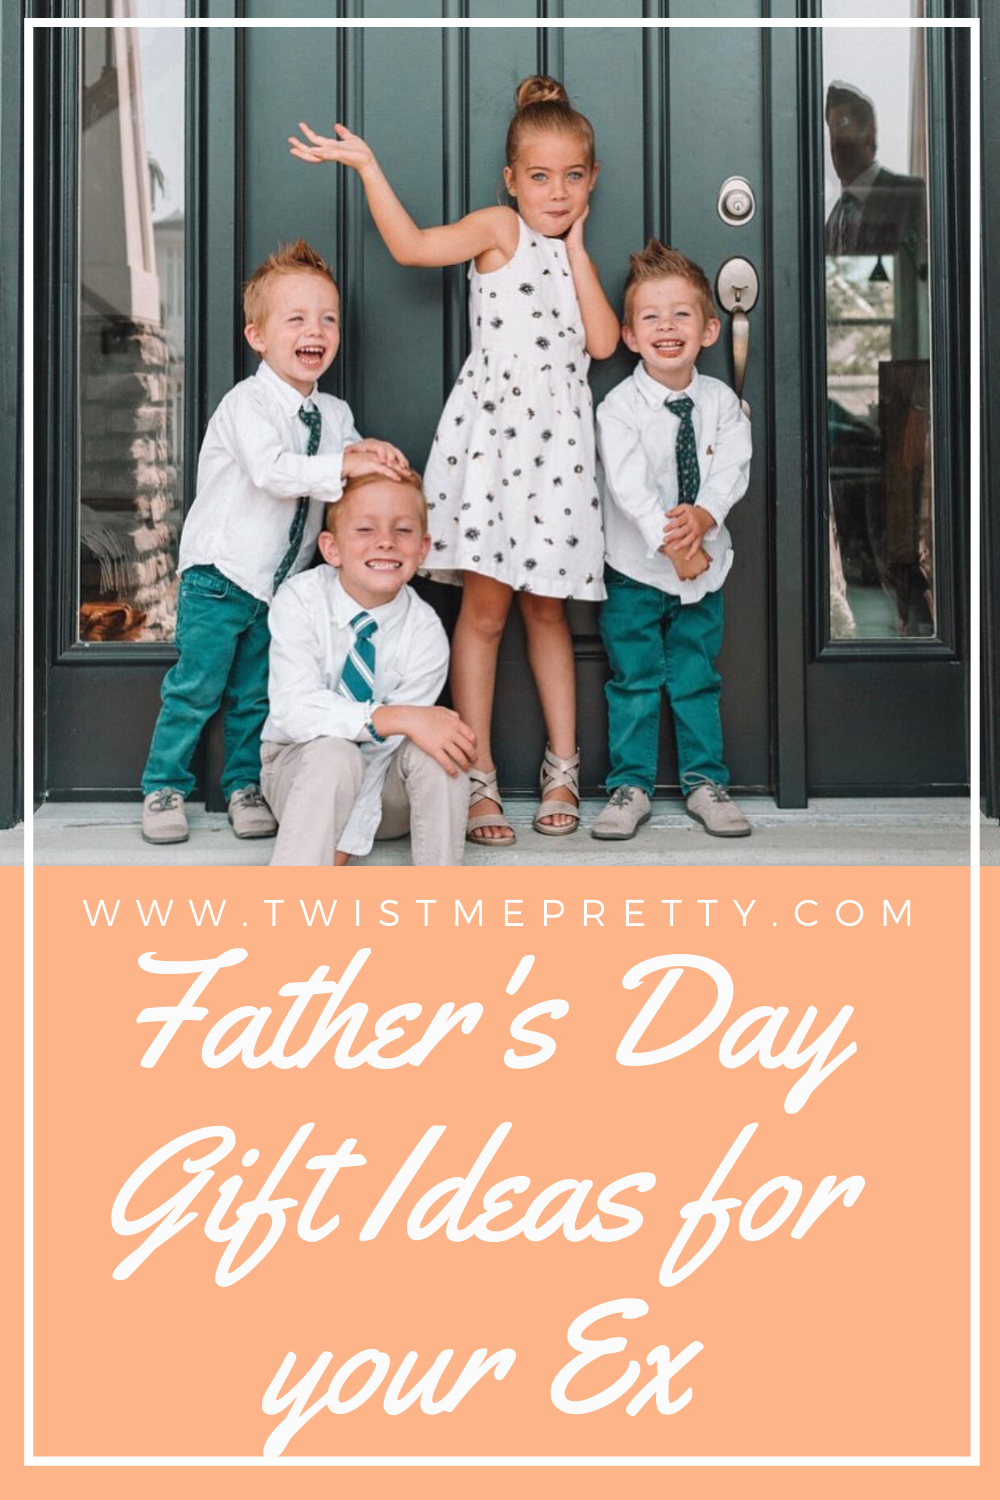 Father's Day gift ideas for your Ex. www.Twistmepretty.com